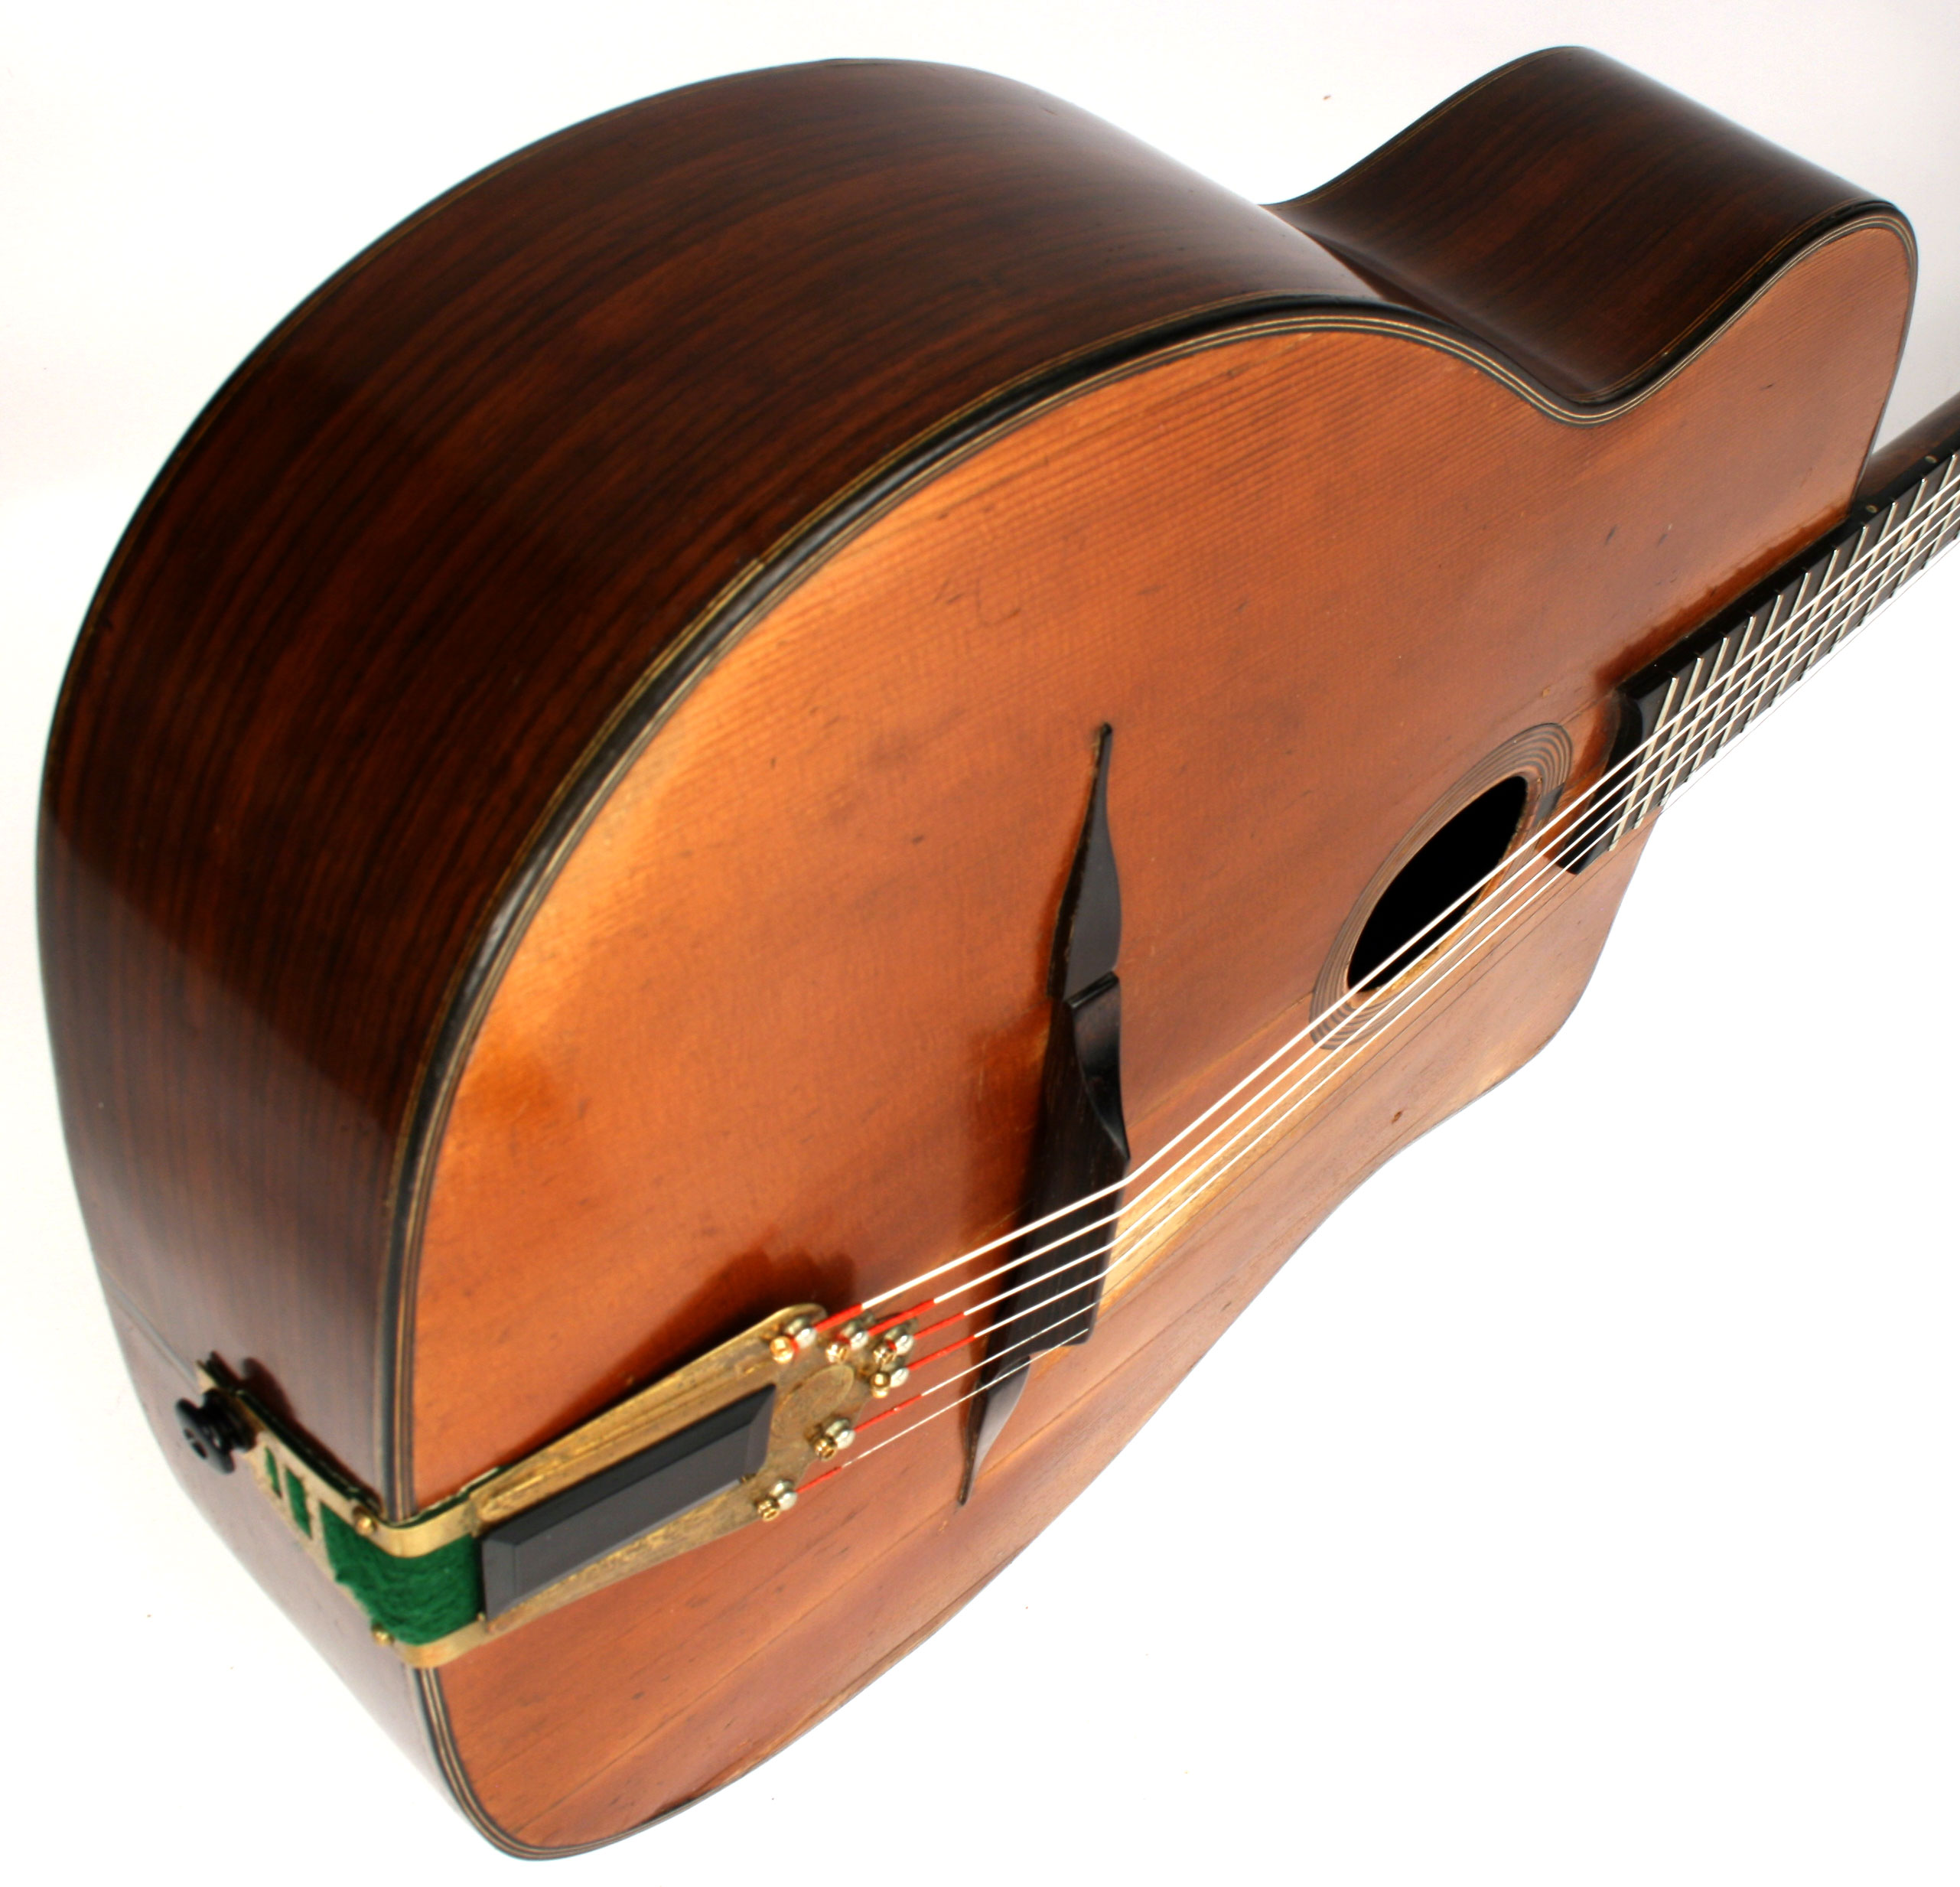 1934 Selmer Petite Bouche Transitional Model